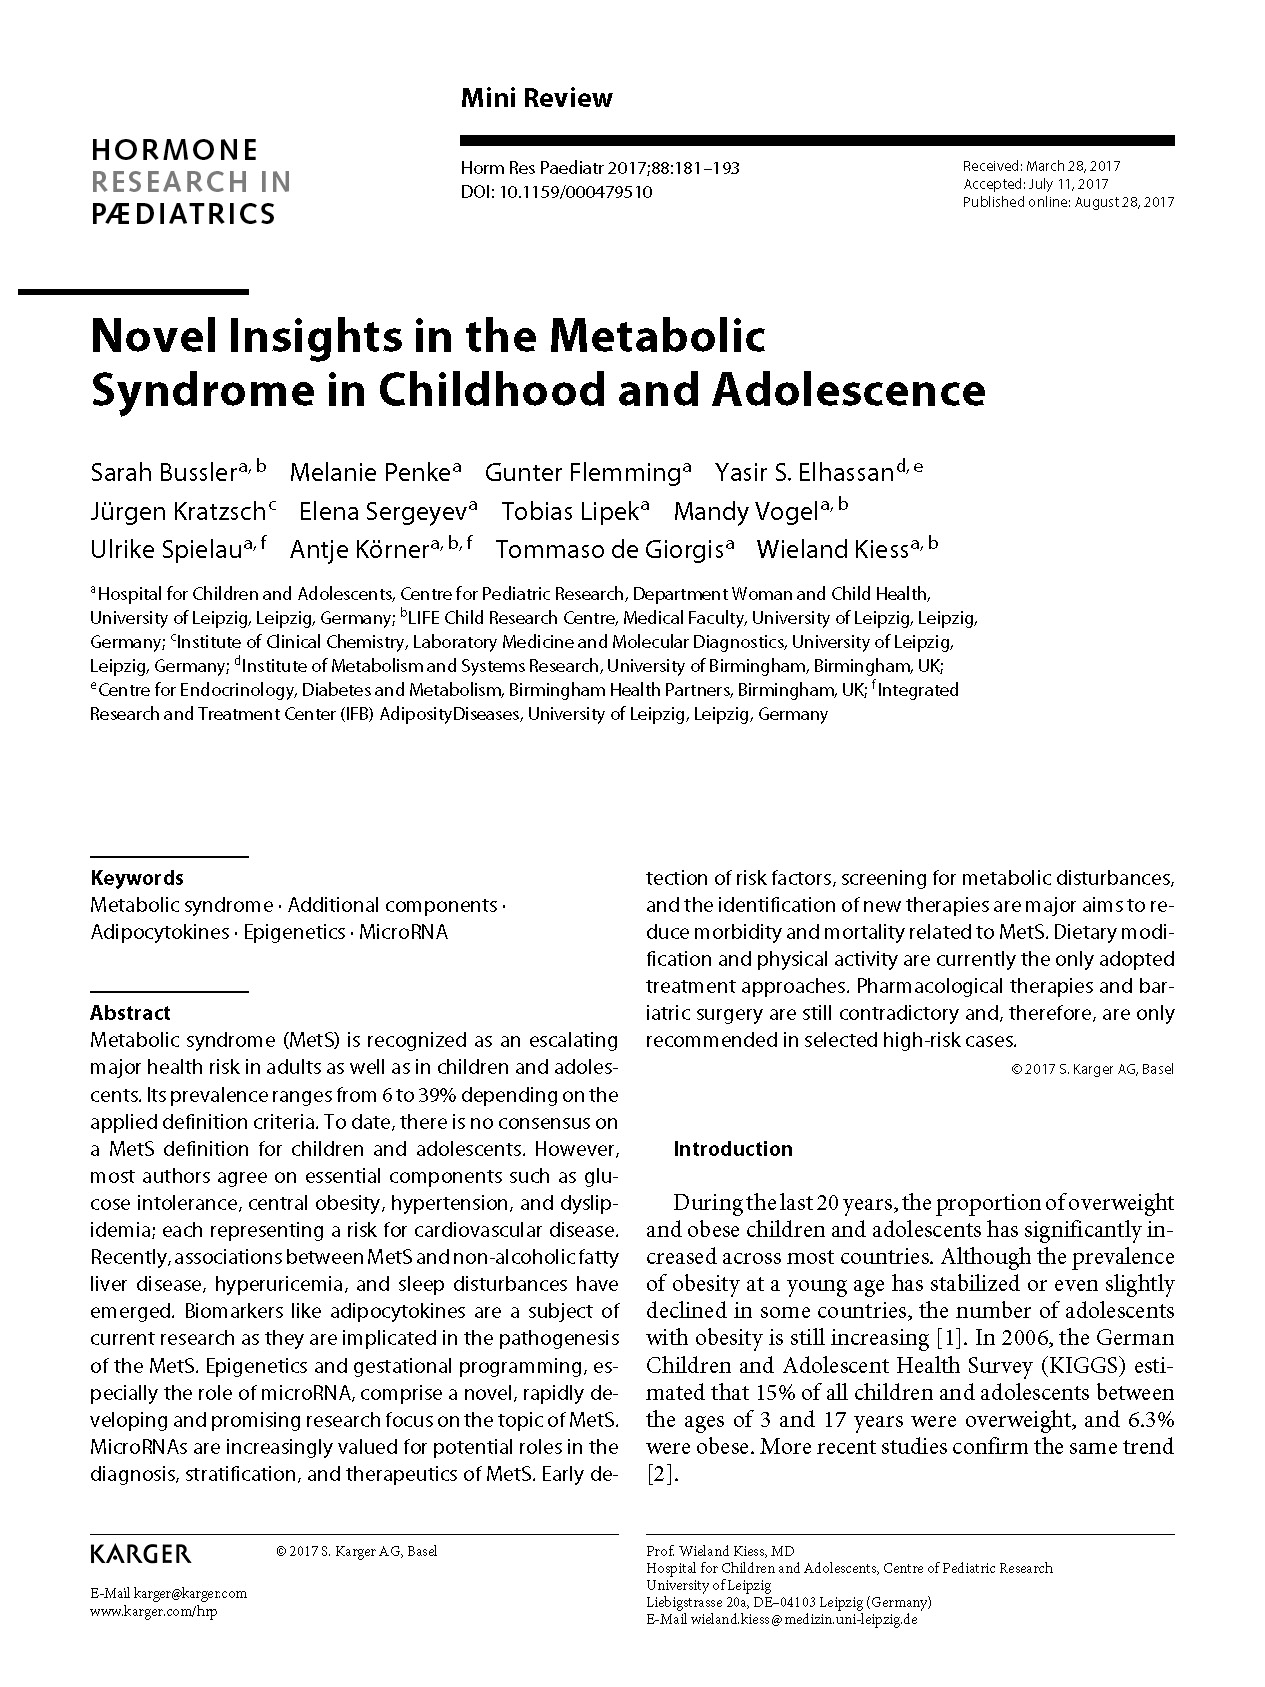 Novel Insights in the Metabolic Syndrome in Childhood and Adolescence